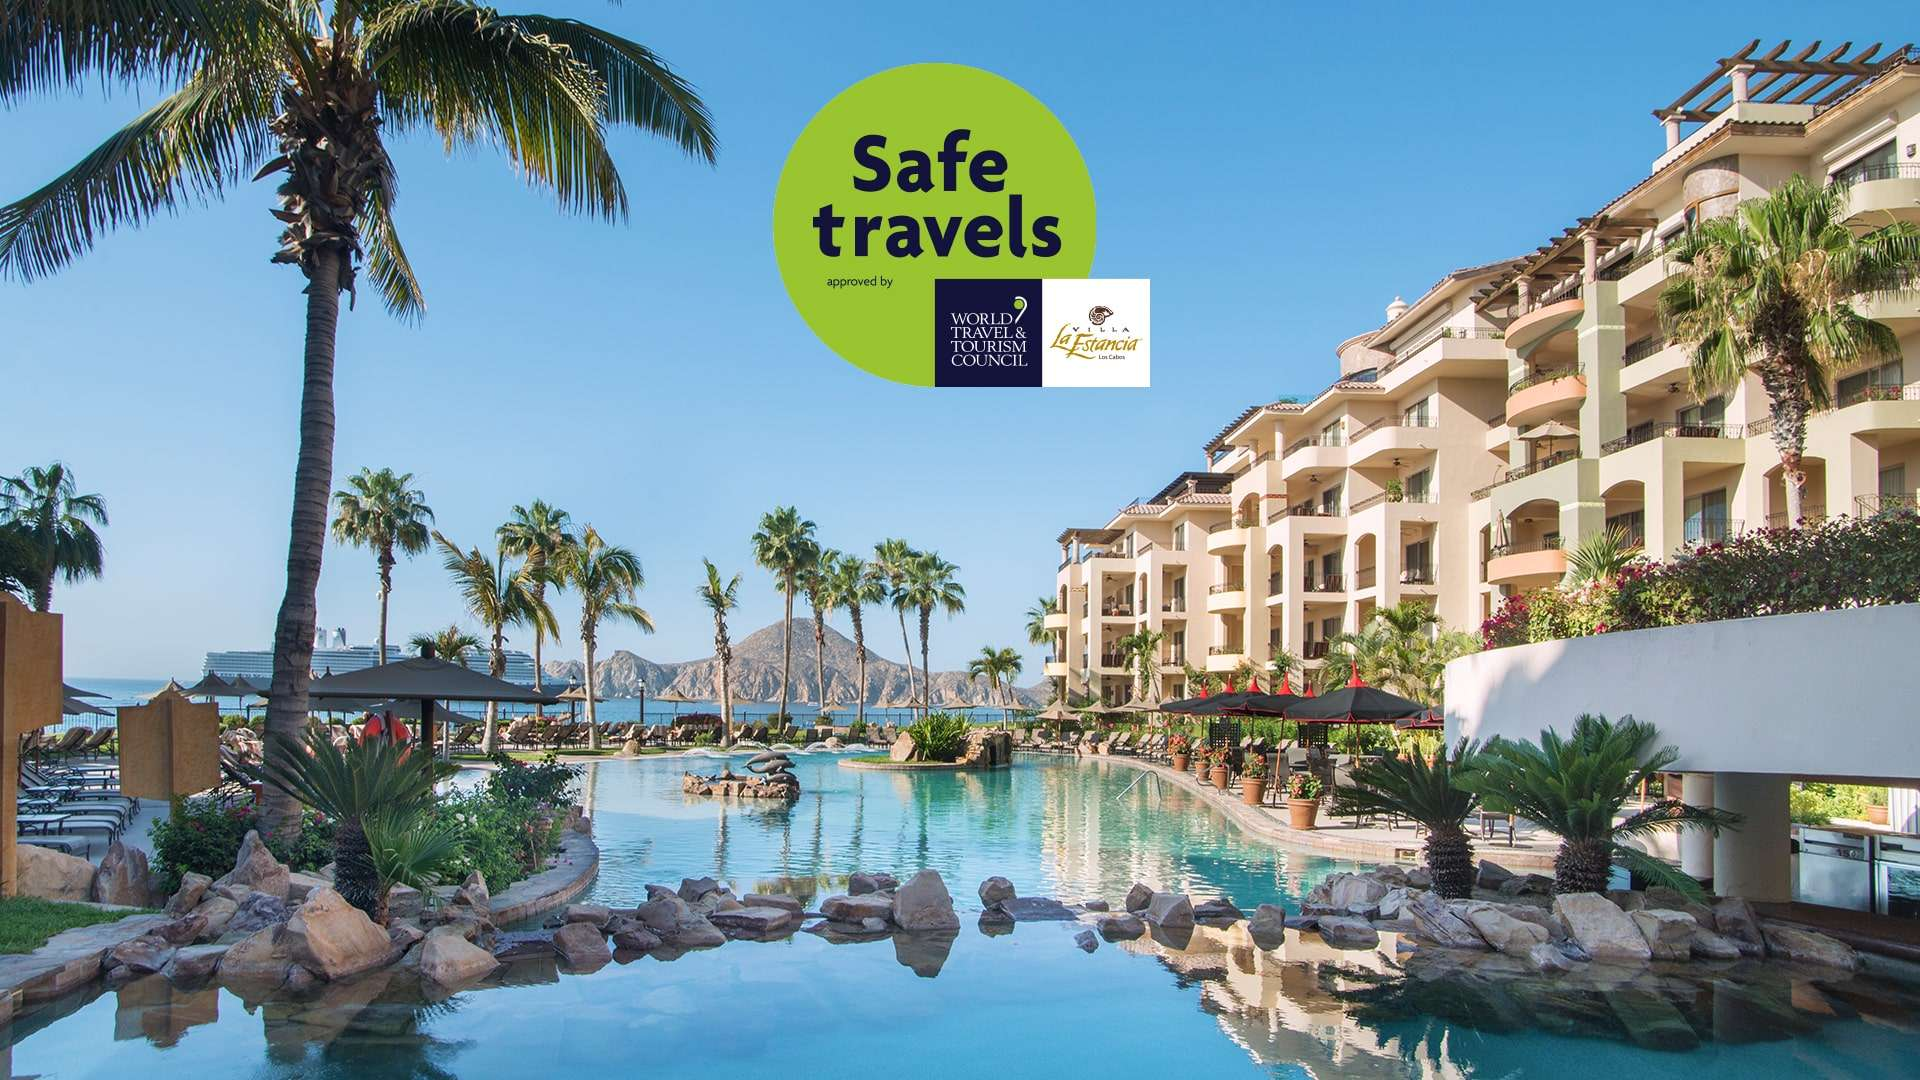 Villa La Estancia Los Cabos Earn Wttc Safe Travels Stamp